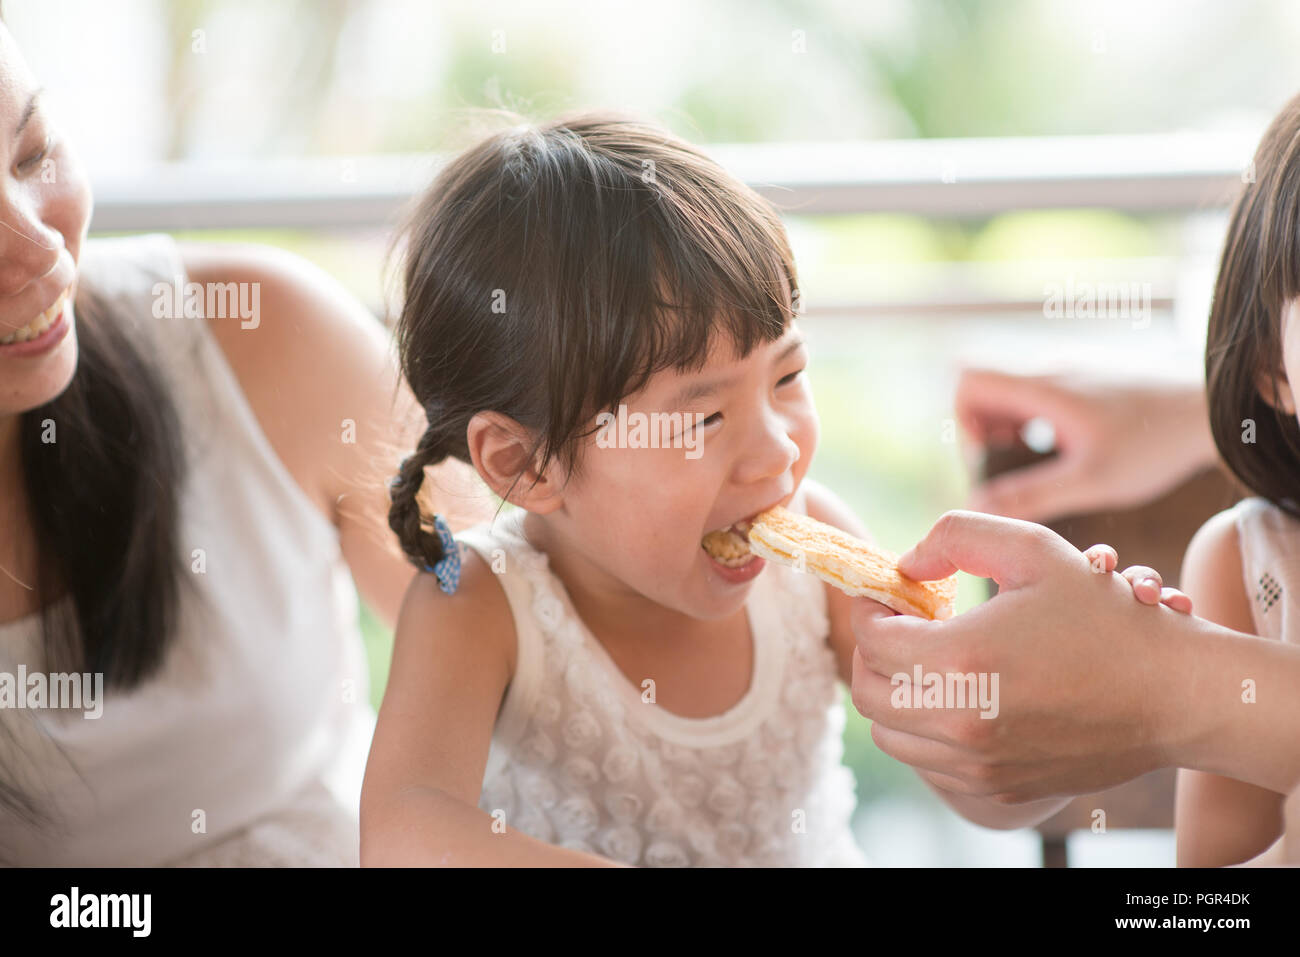 Daddy feed bread to child at cafe. Asian family outdoor lifestyle with natural light. - Stock Image